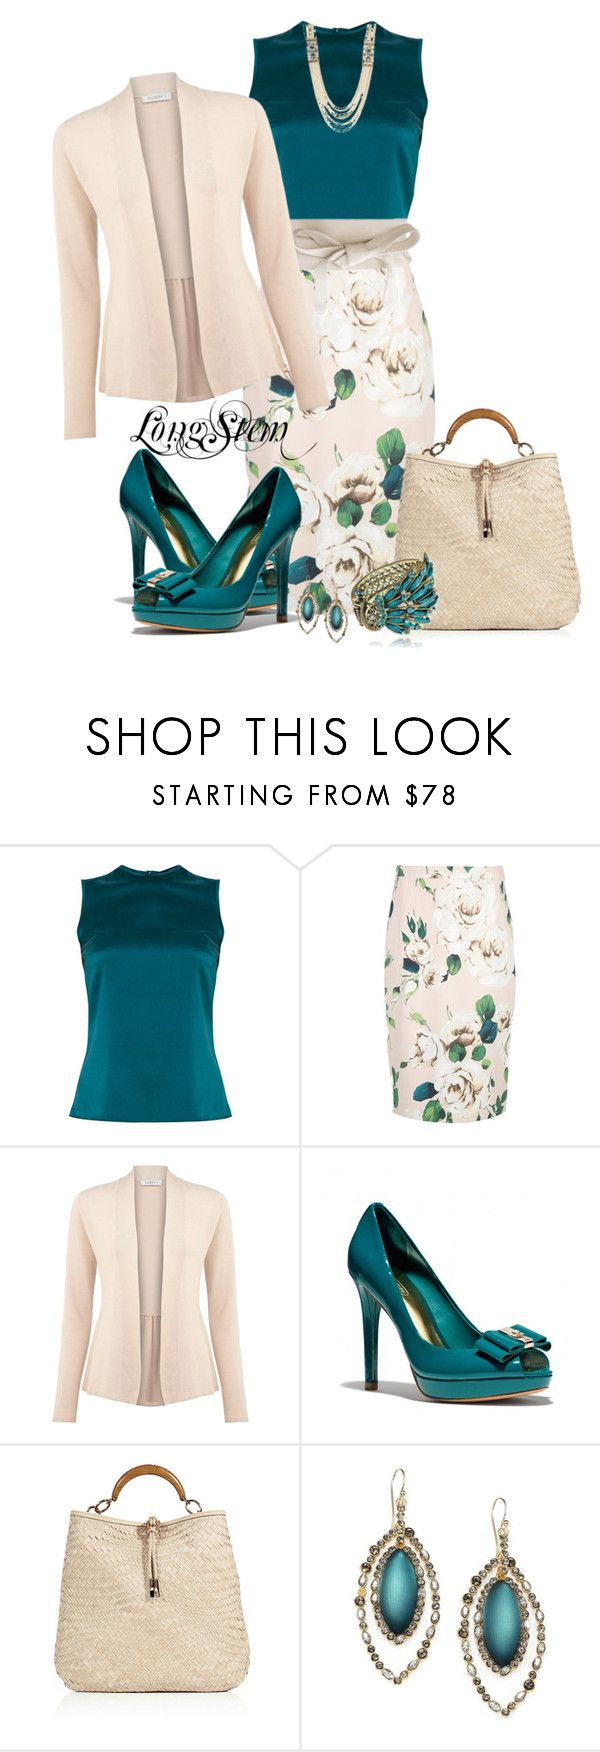 """Untitled #240"" by longstem ❤ liked on Polyvore featuring Safiyaa, Dolce&Gabbana, MANGO, Kaliko, Coach, Salvatore Ferragamo and Alexis Bittar"